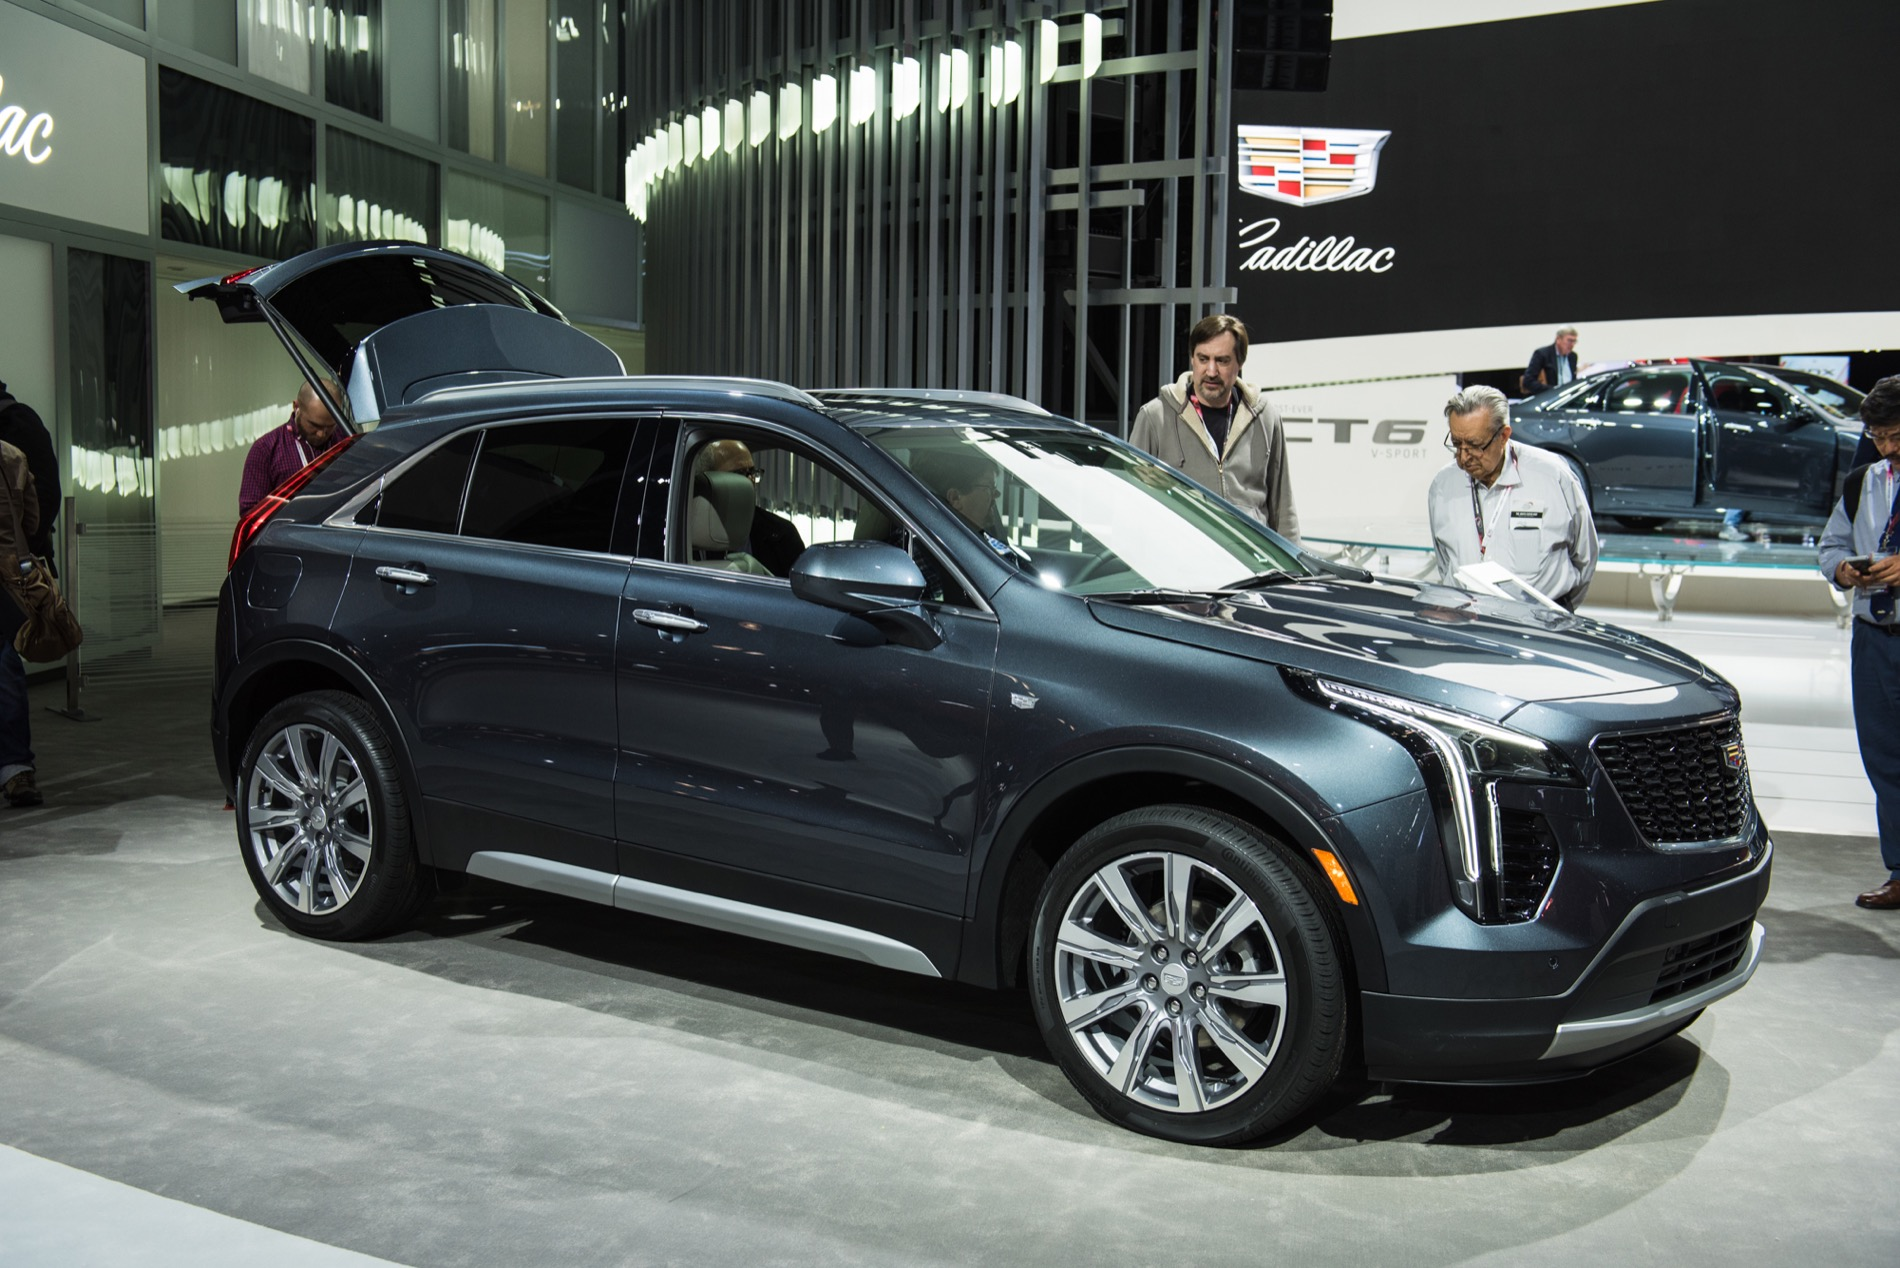 2019 Cadillac Xt4 Specifications Released